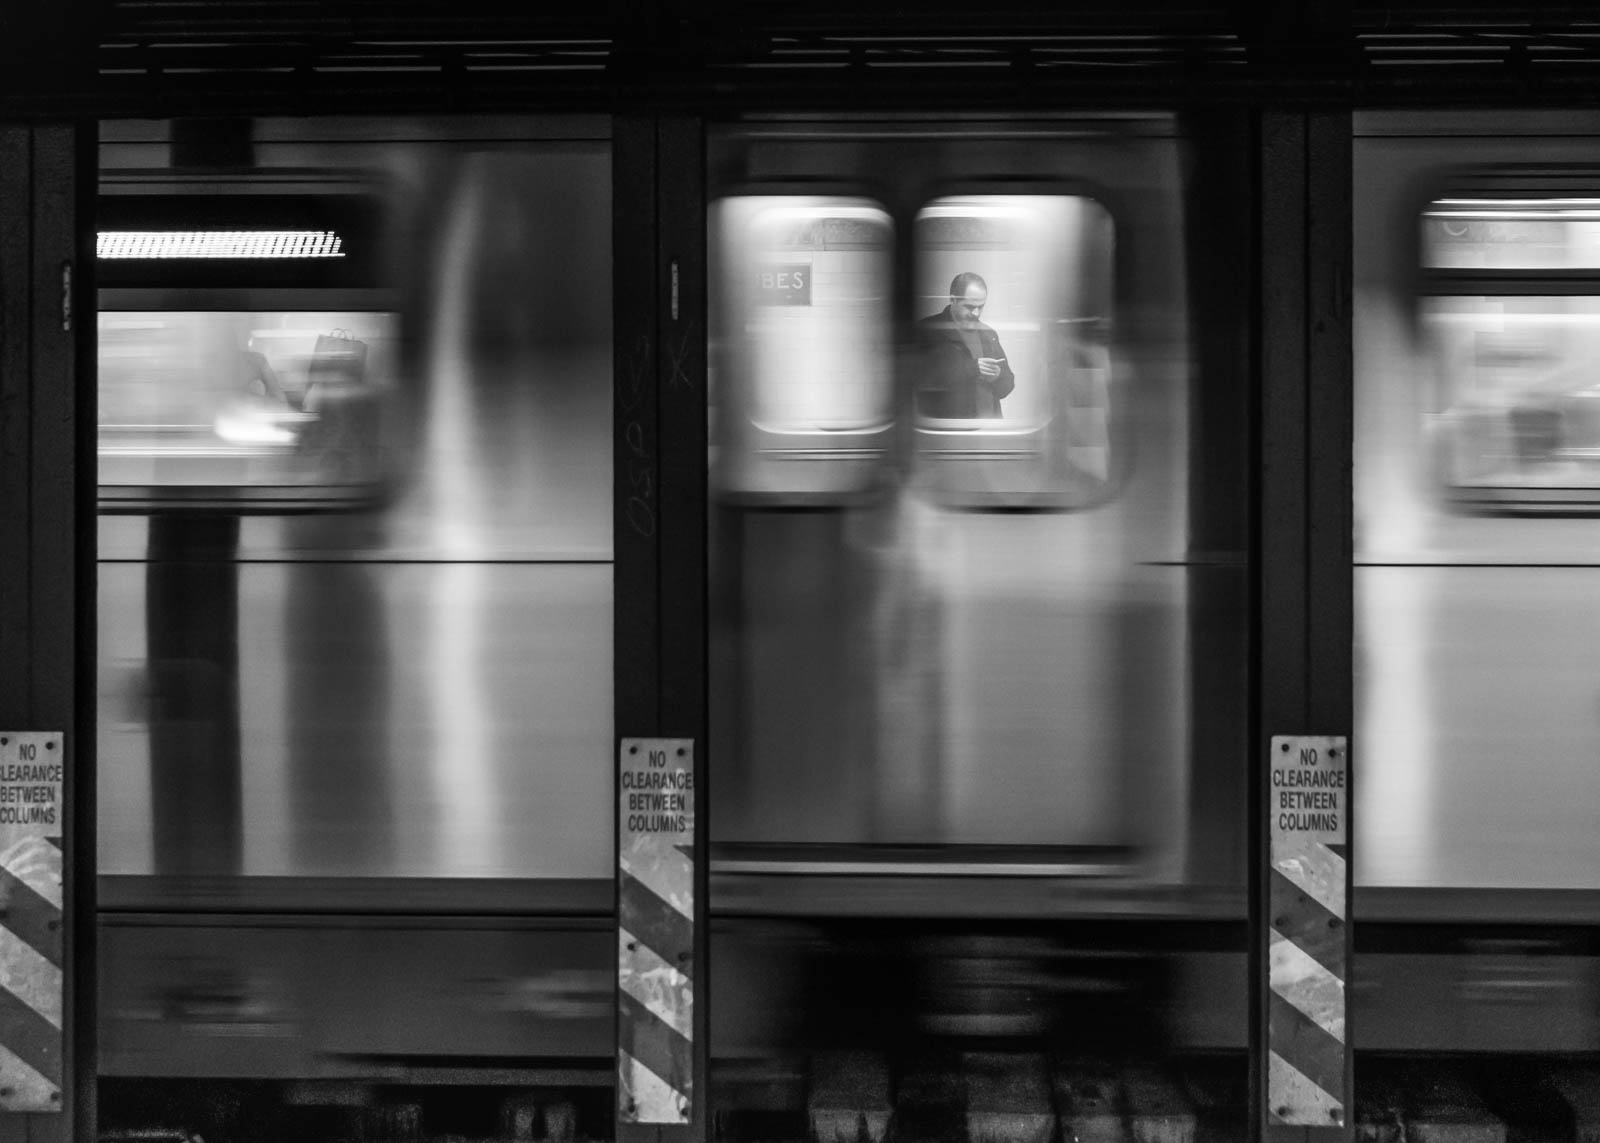 Stop motion blur of a subway